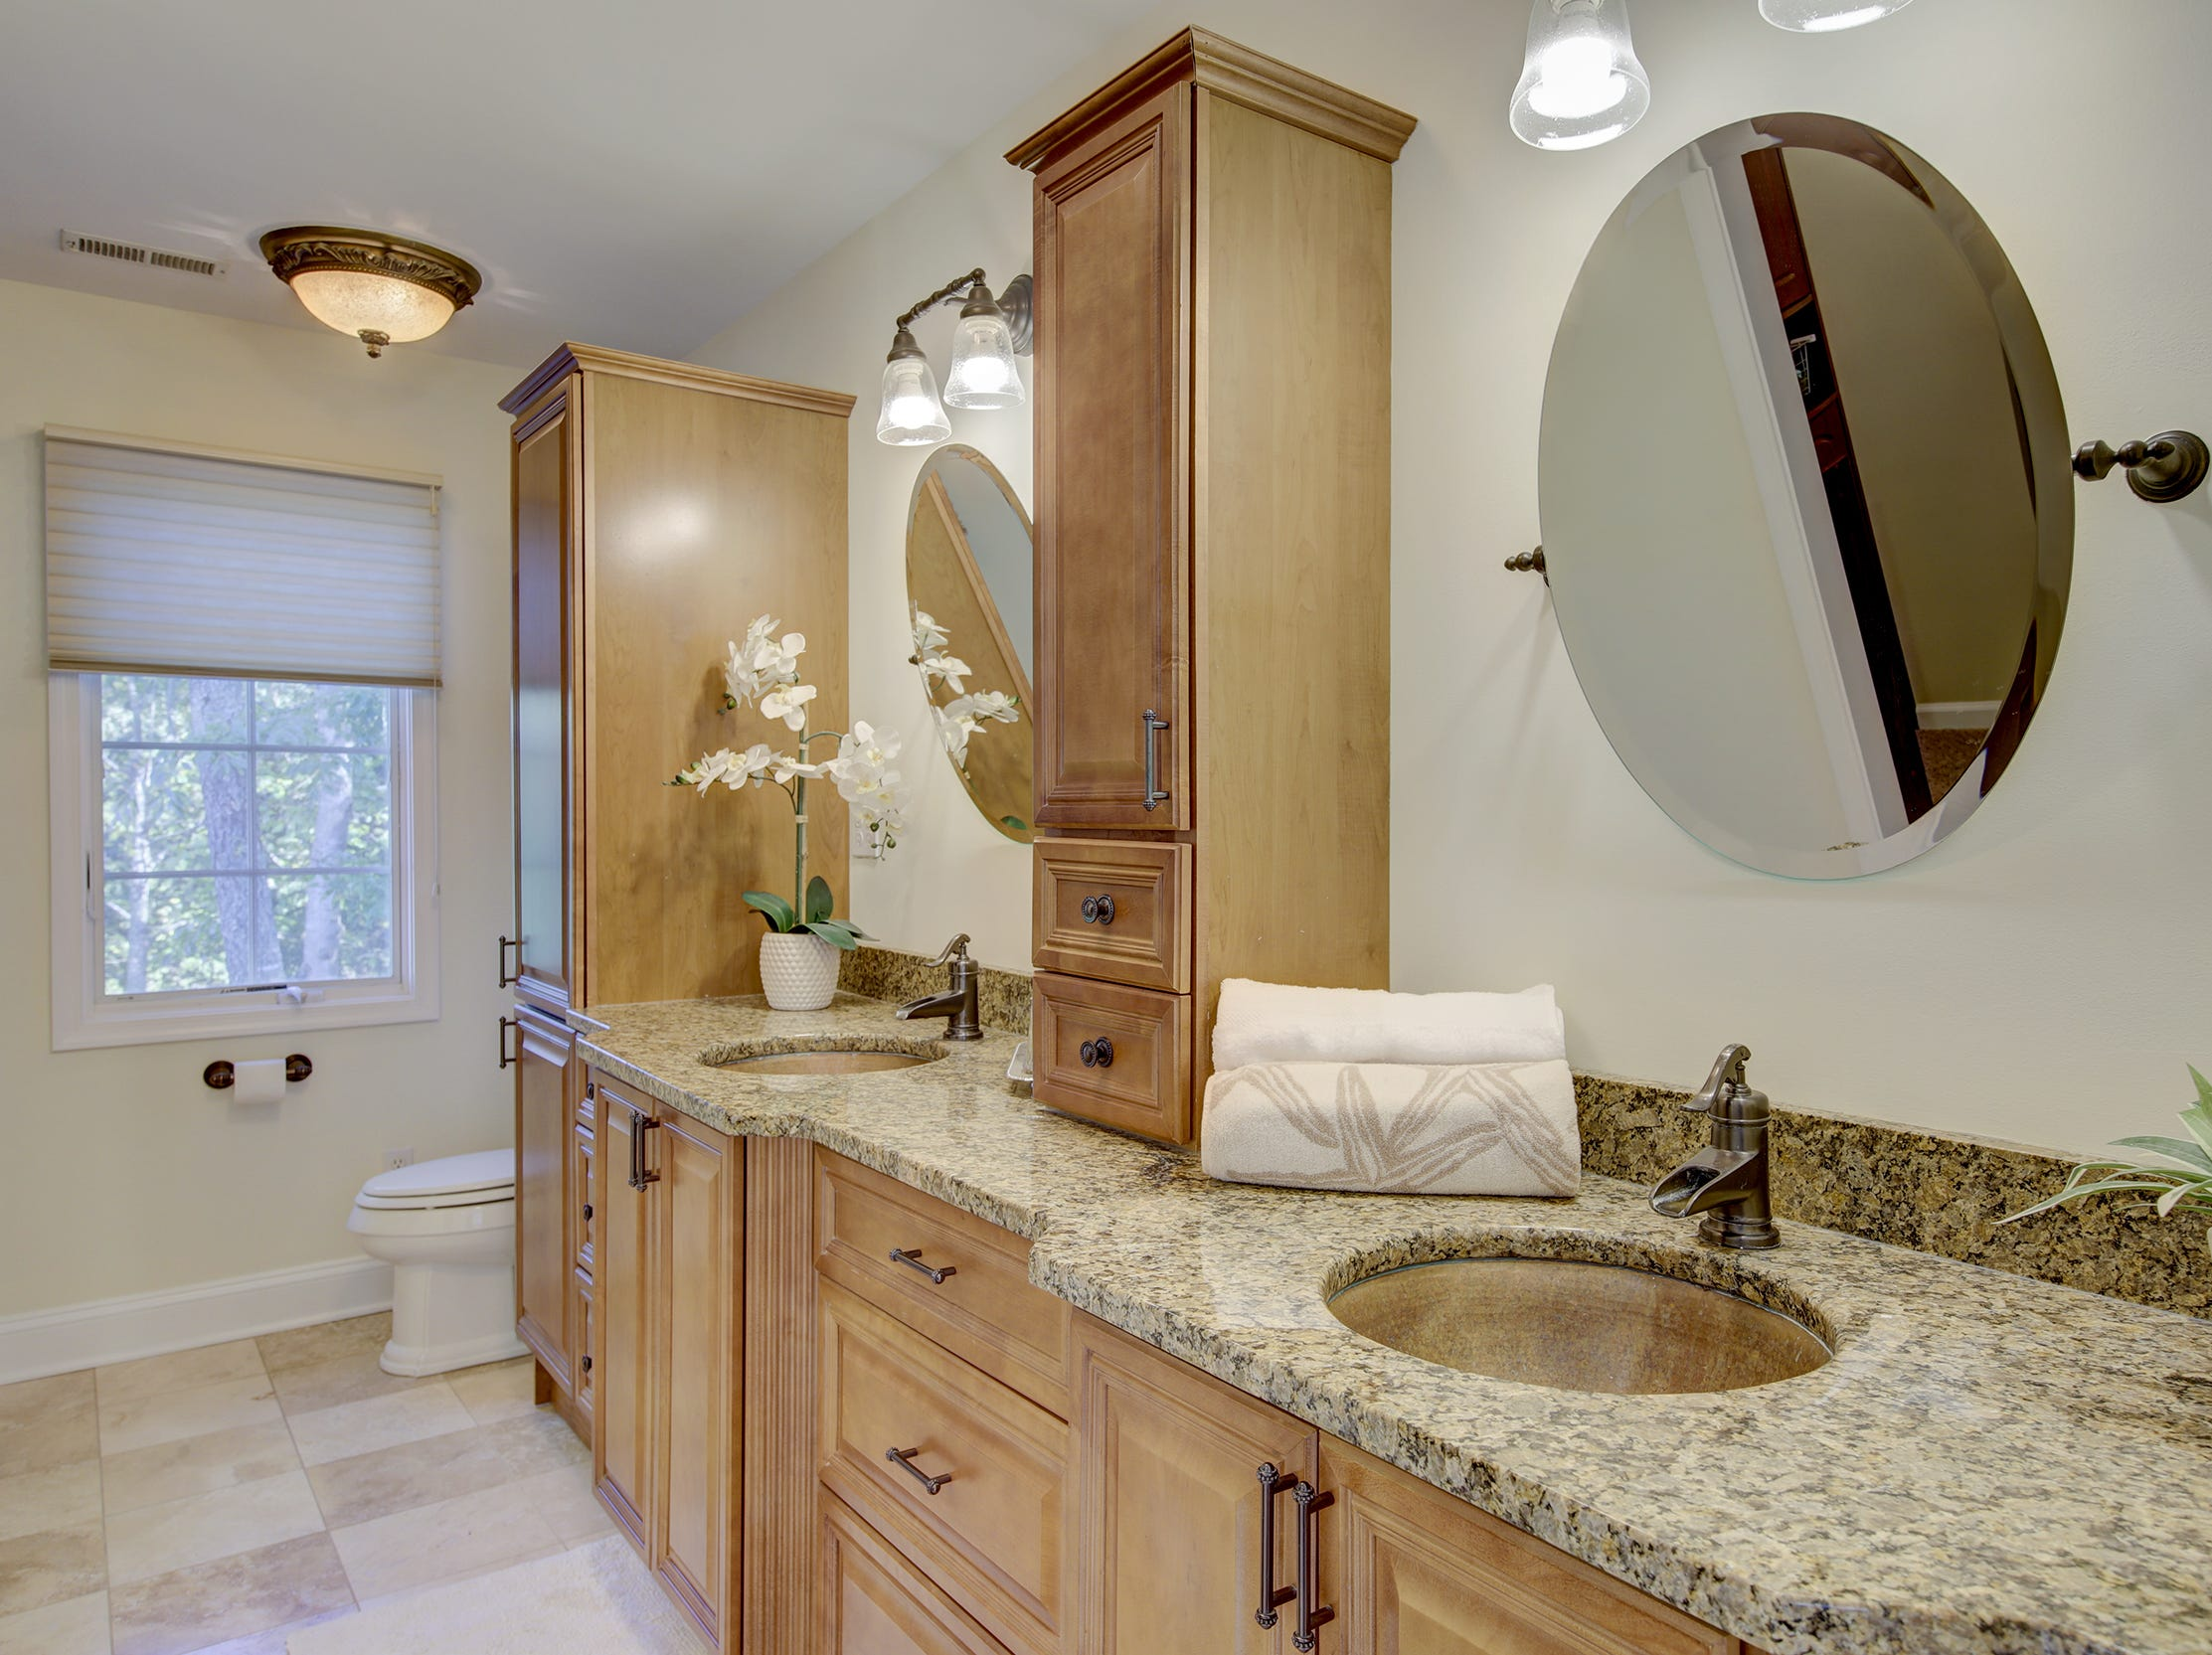 This bath at 204 Lakeview Shores  features dual vanities and wood cabinetry.